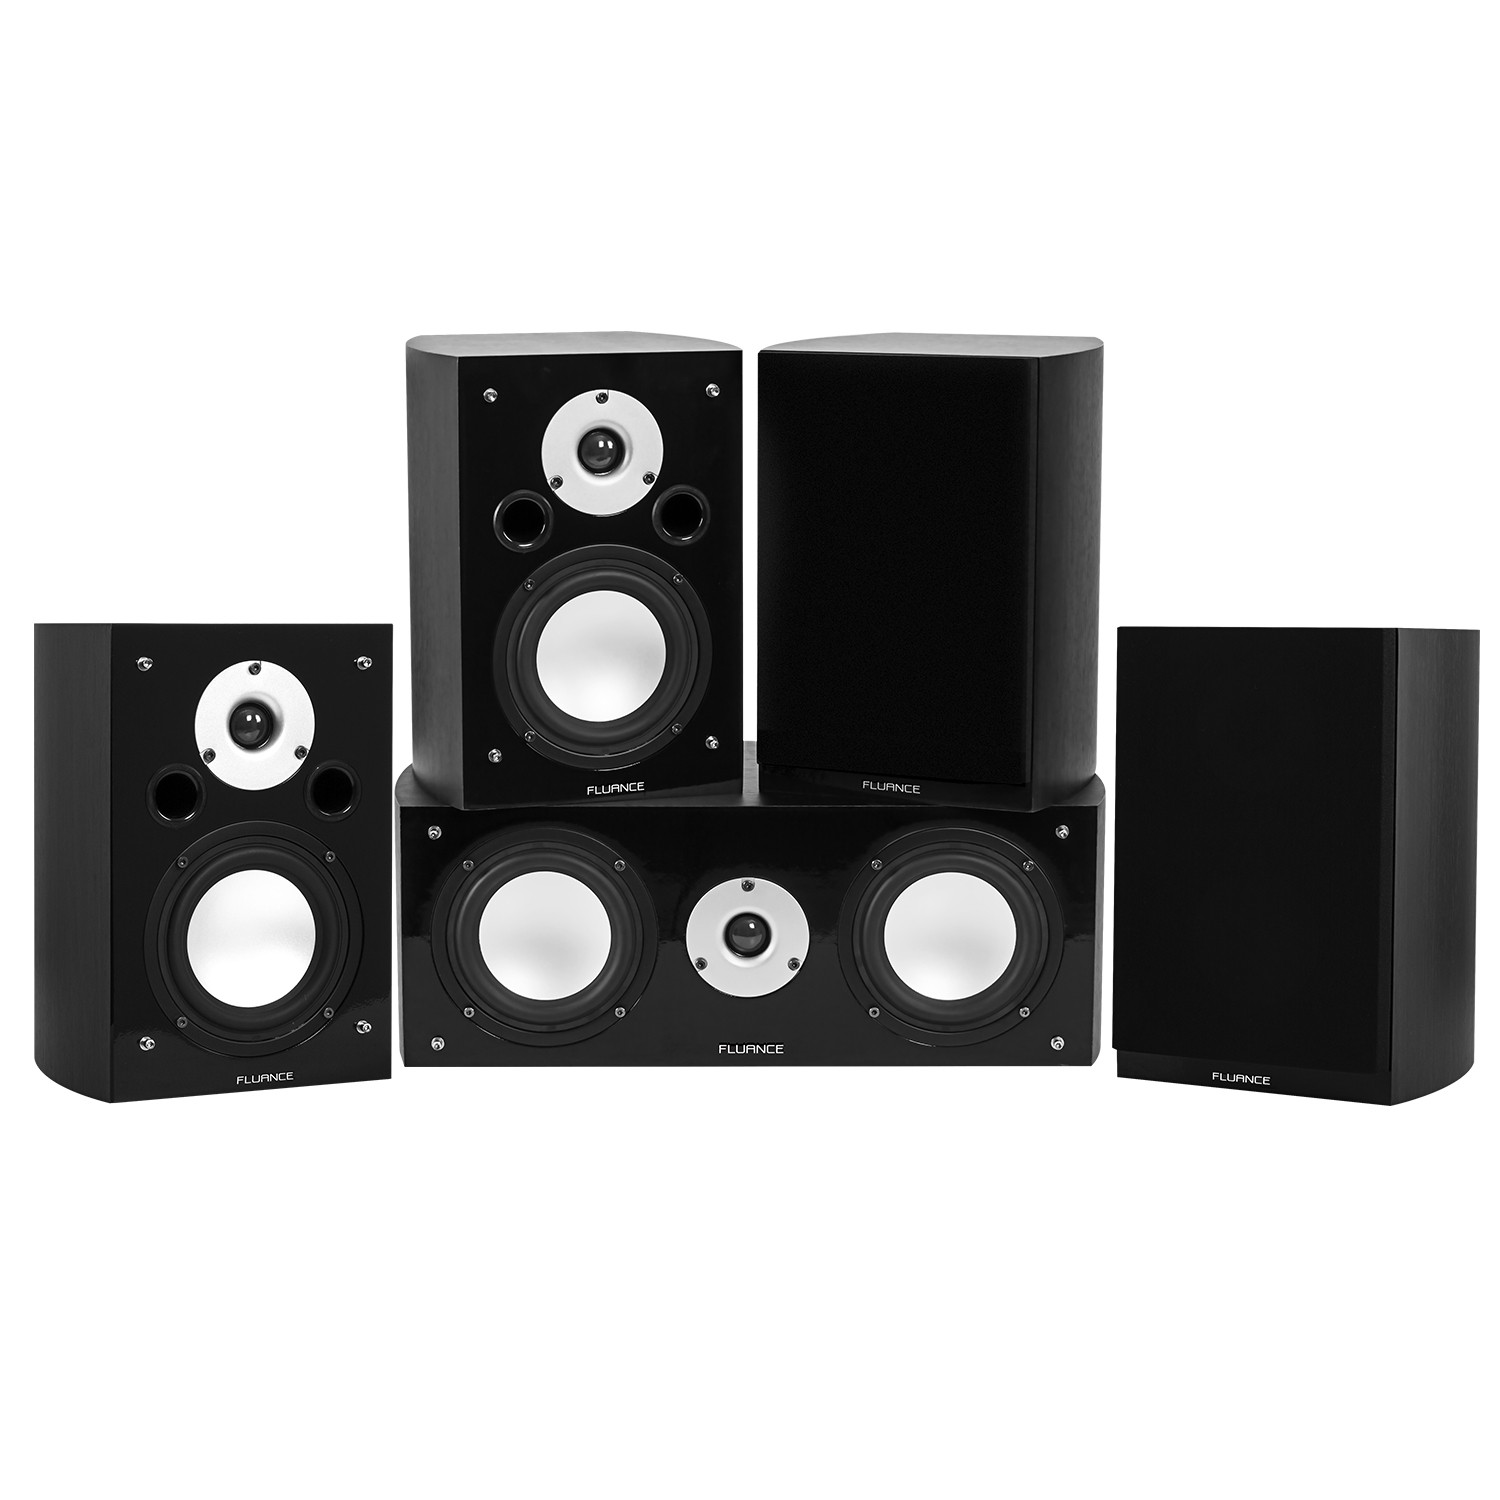 Reference Series Black Ash Compact Surround Sound Home Theater 5.0 Channel Speaker System